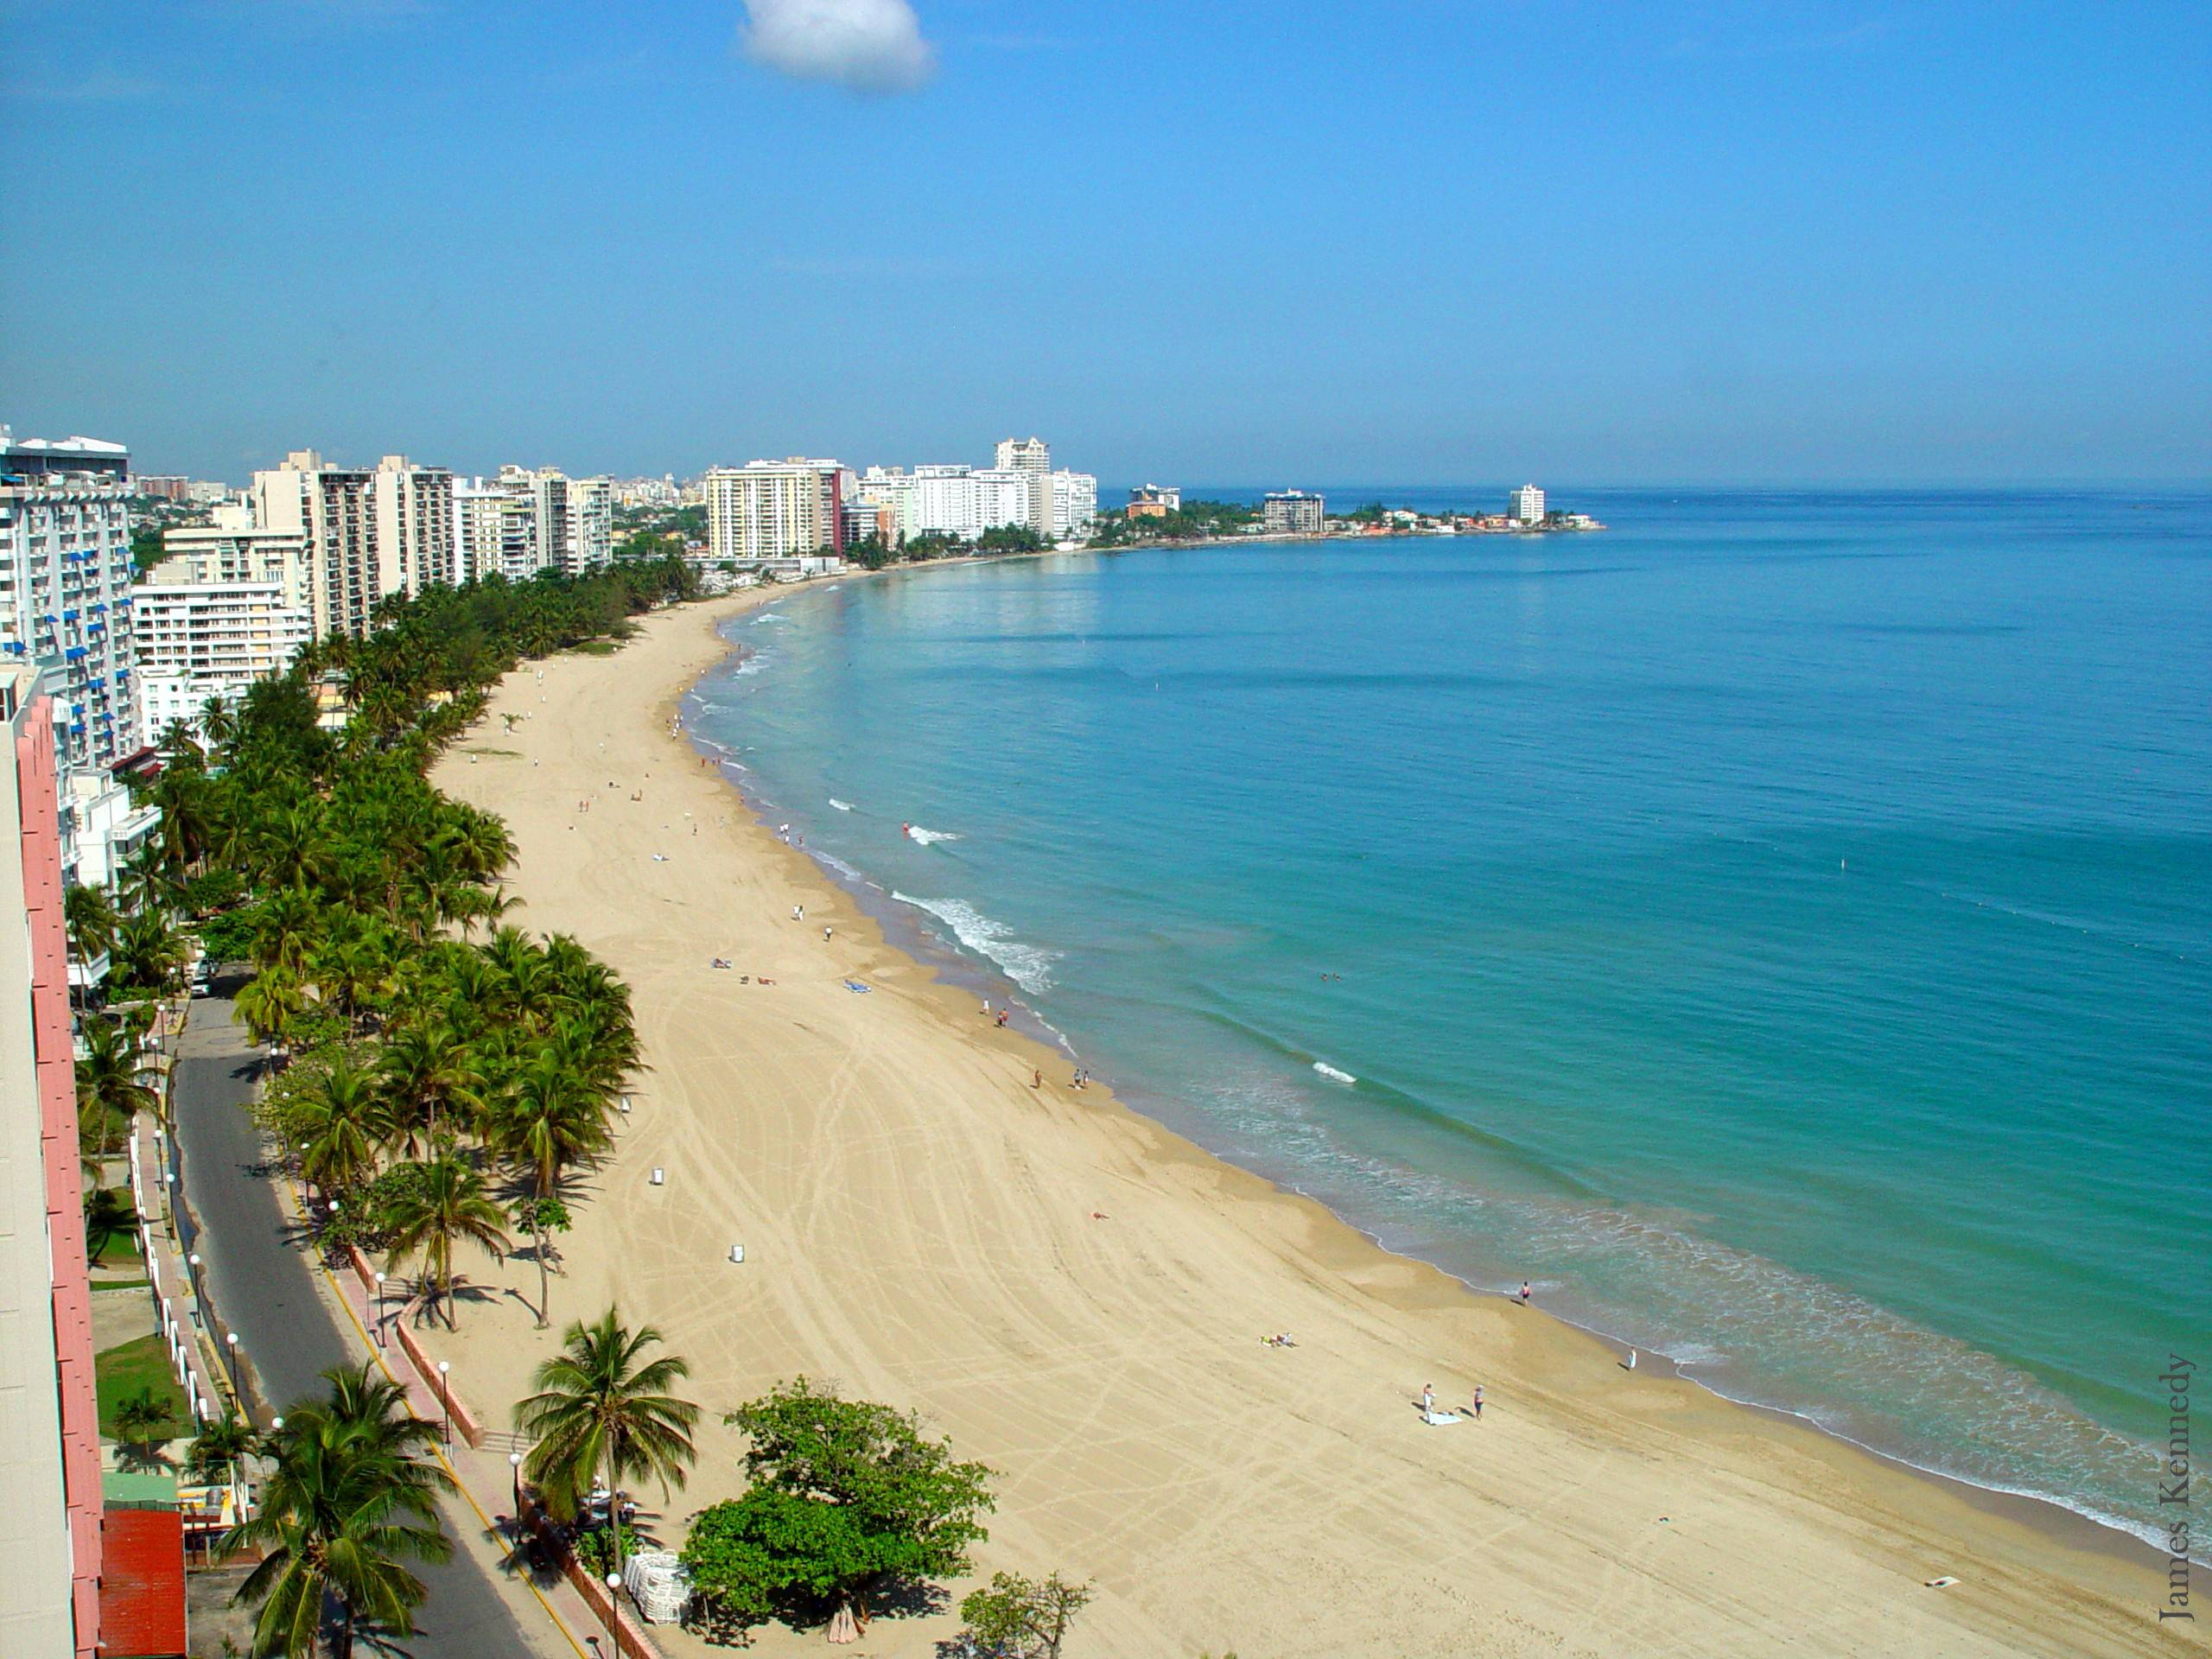 Puerto Rico Beaches Wallpapers - Wallpaper Cave